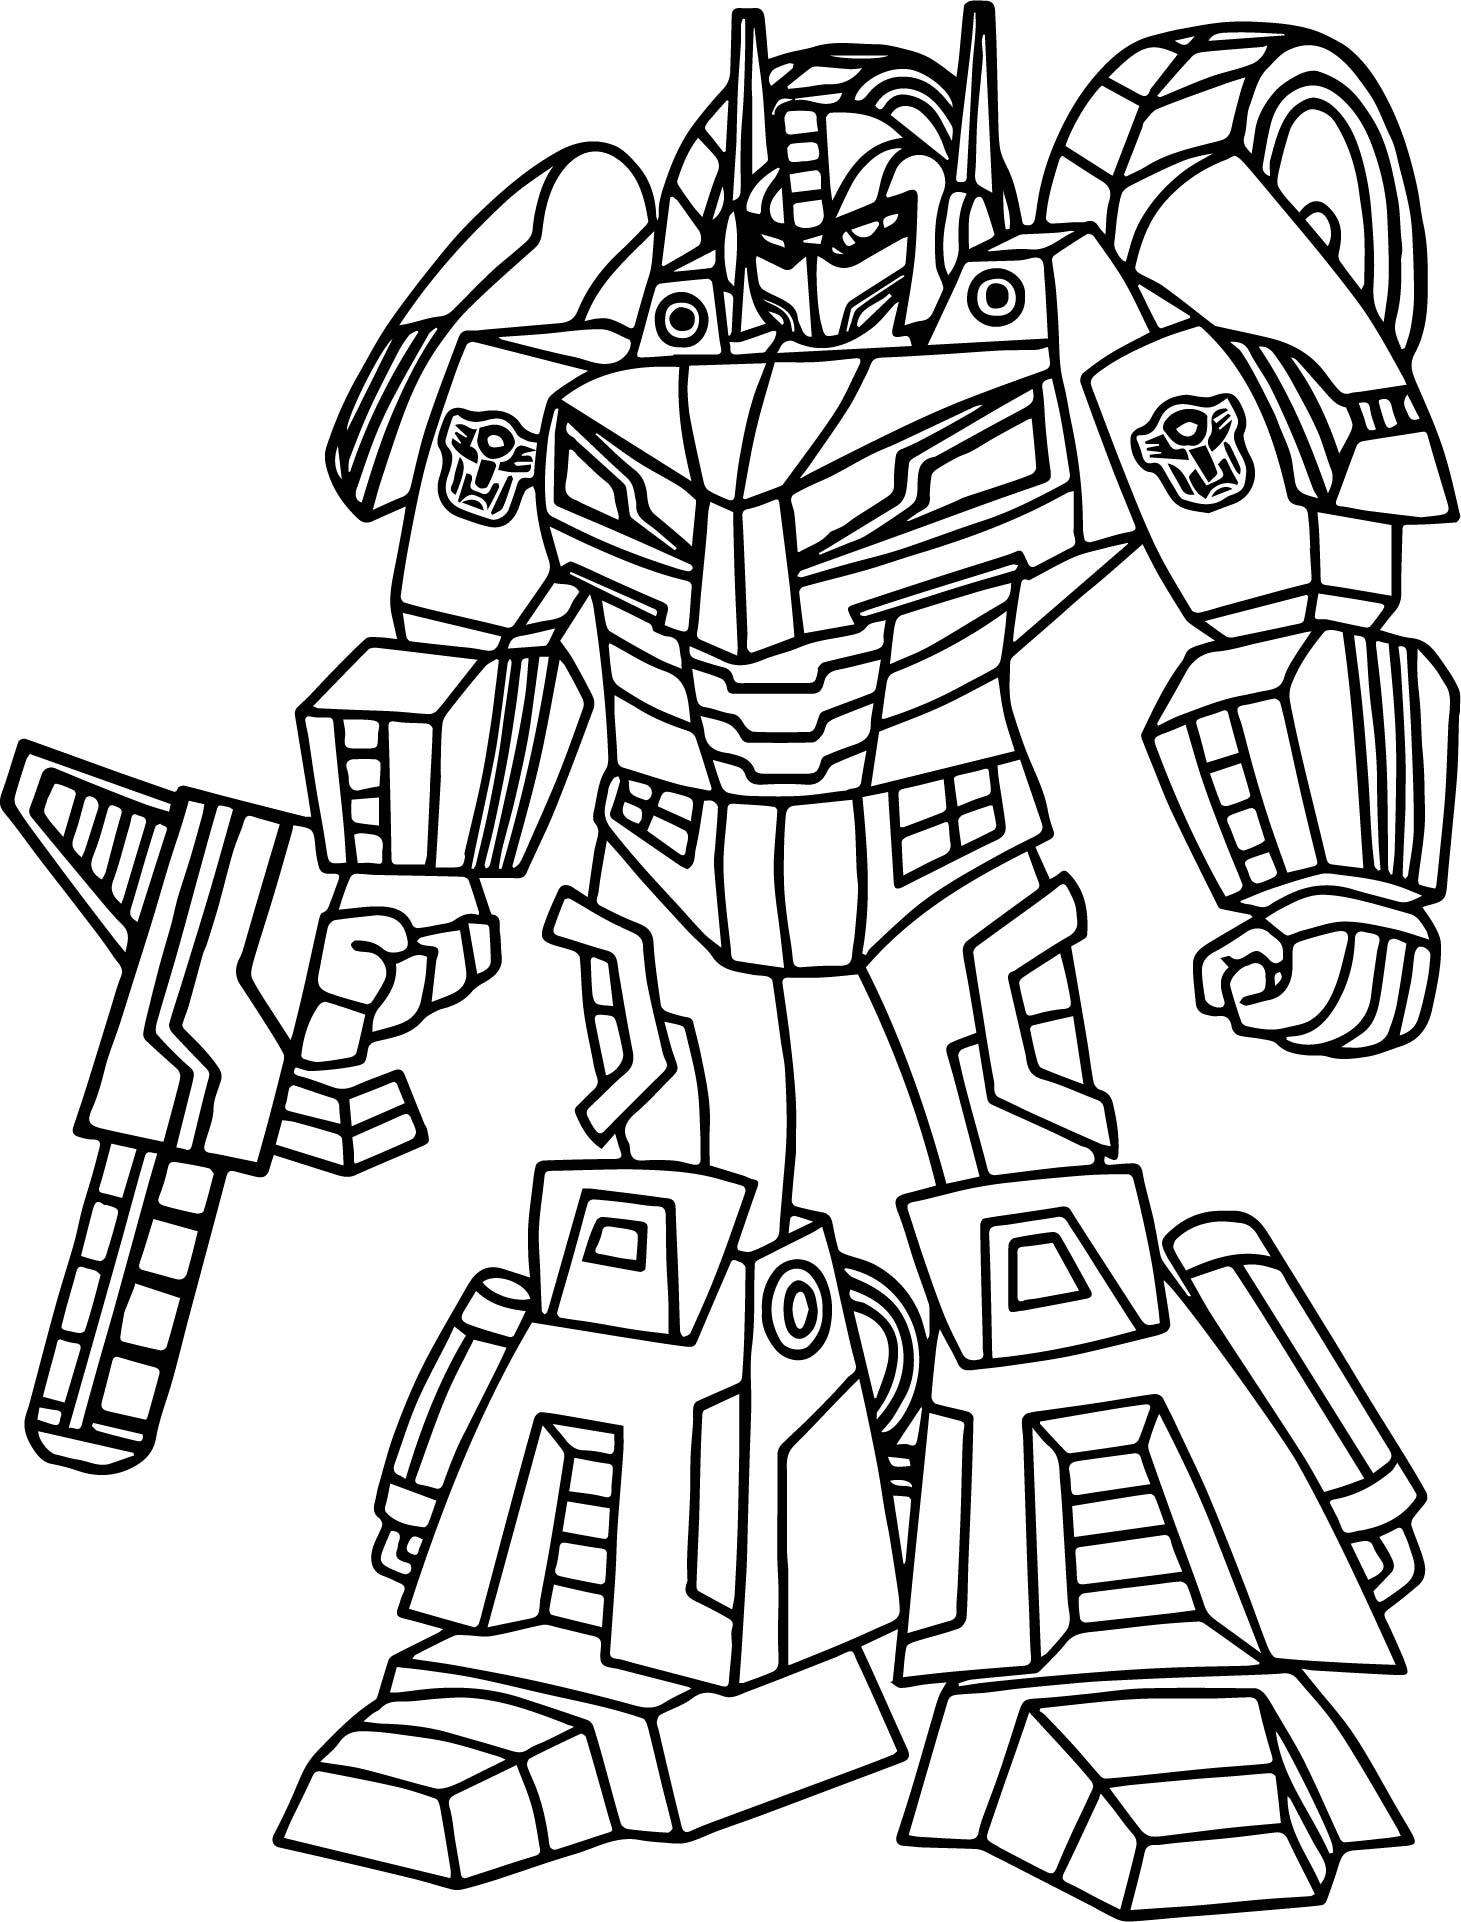 coloring pages transformers popular transformer coloring sheets for kids coloring transformers pages coloring